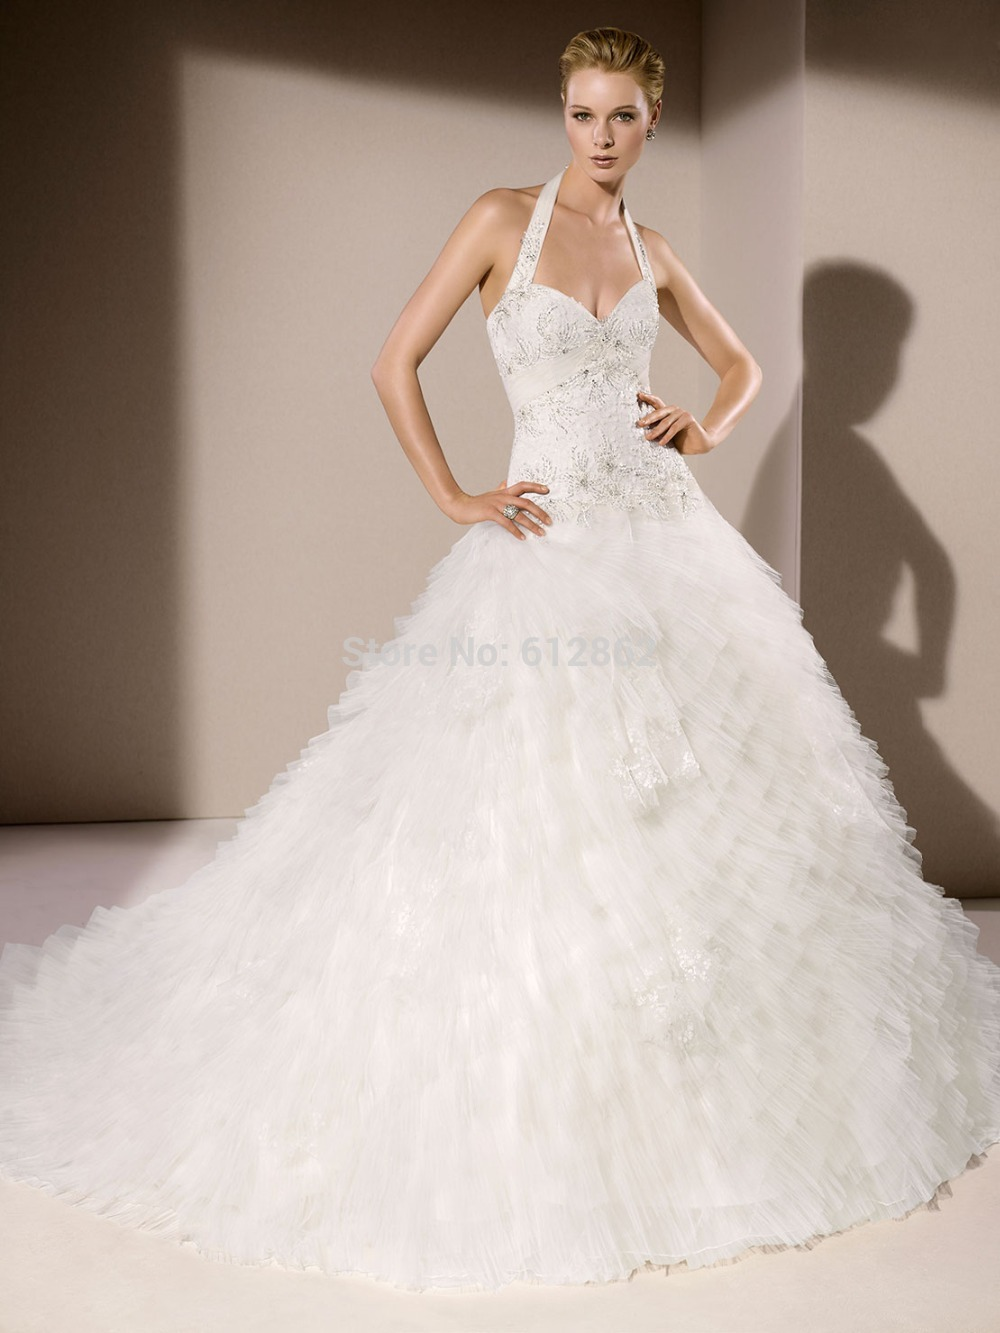 Halter beaded lace bodice tulle skirt ball gown low cut back long halter beaded lace bodice tulle skirt ball gown low cut back long train couture wedding gown in wedding dresses from weddings events on aliexpress ombrellifo Images